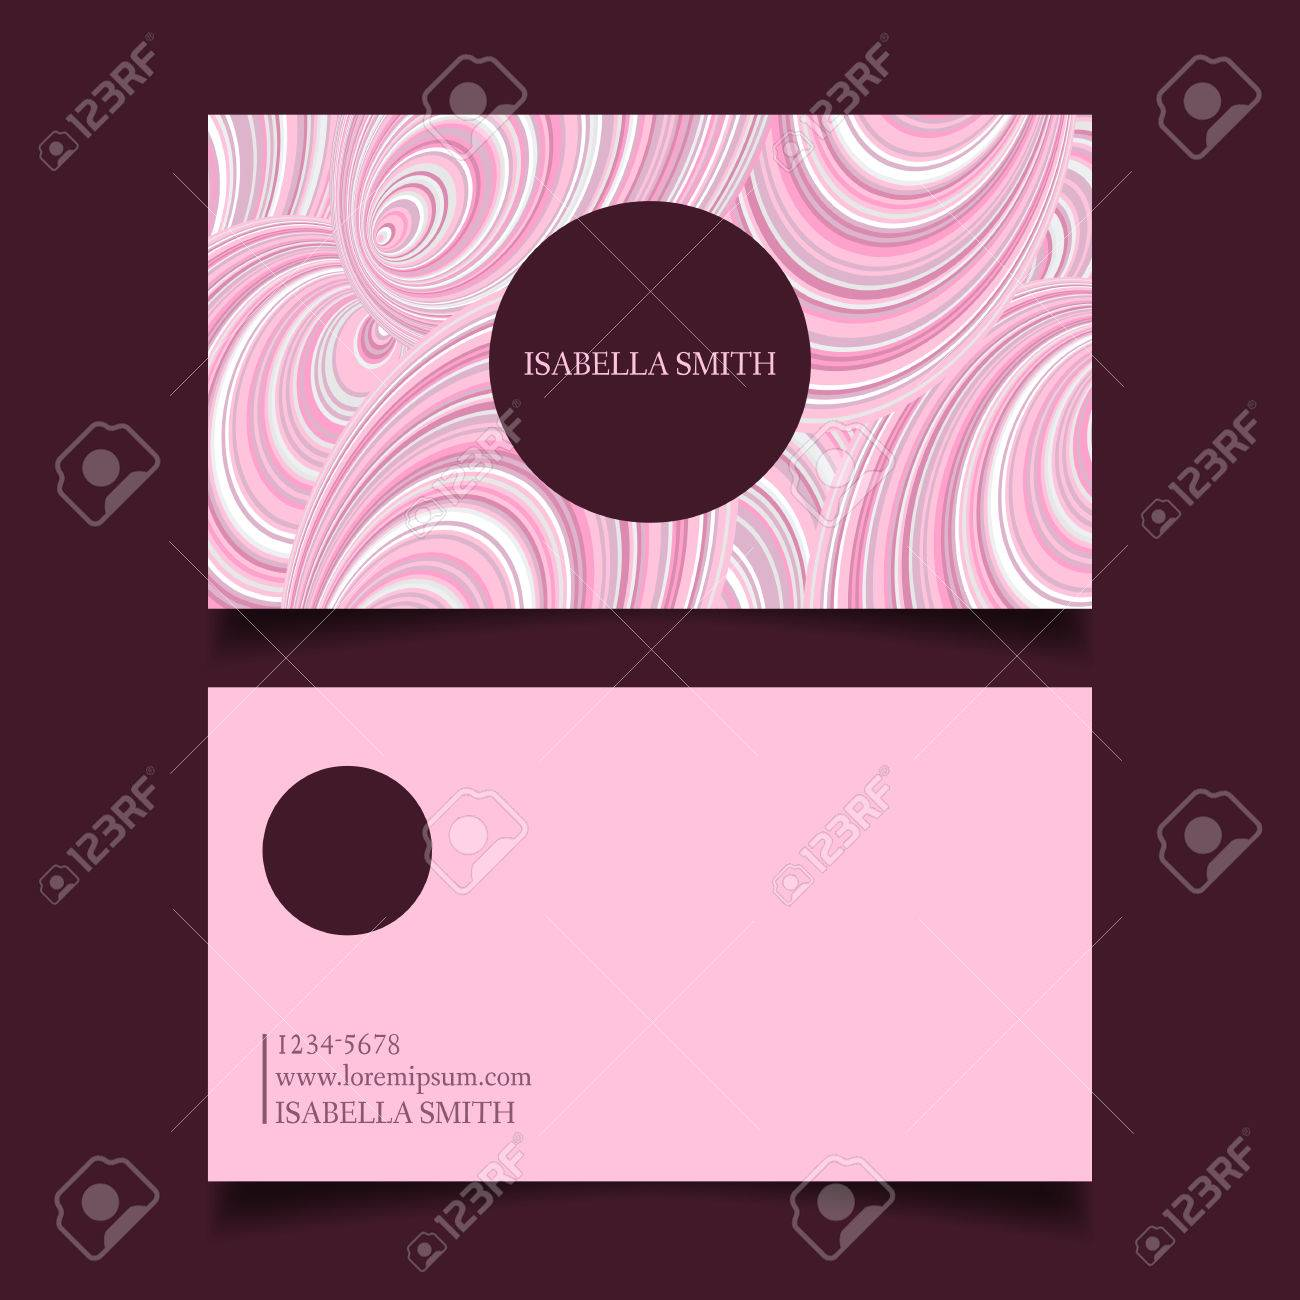 Business card template editable gently pink color palette design business card template editable gently pink color palette design vector stock vector flashek